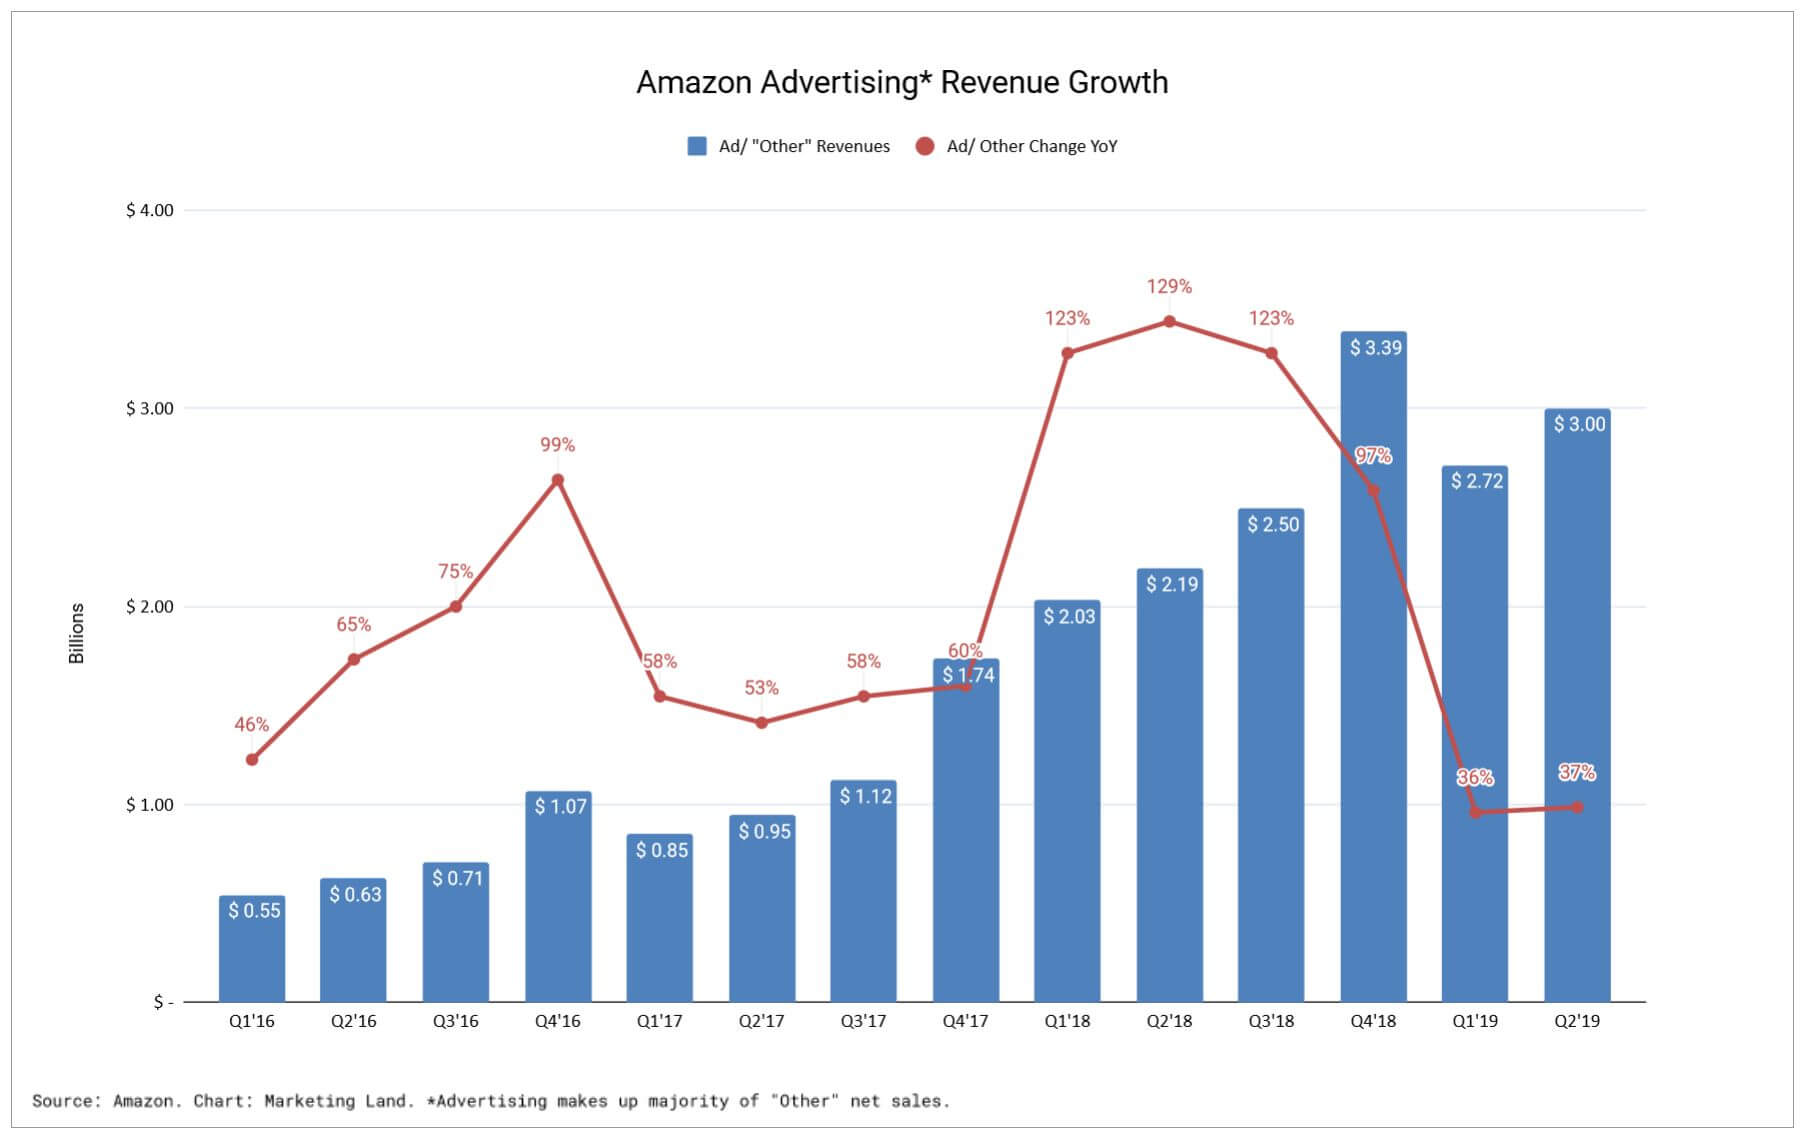 Amazon's high-flying advertising growth levels out